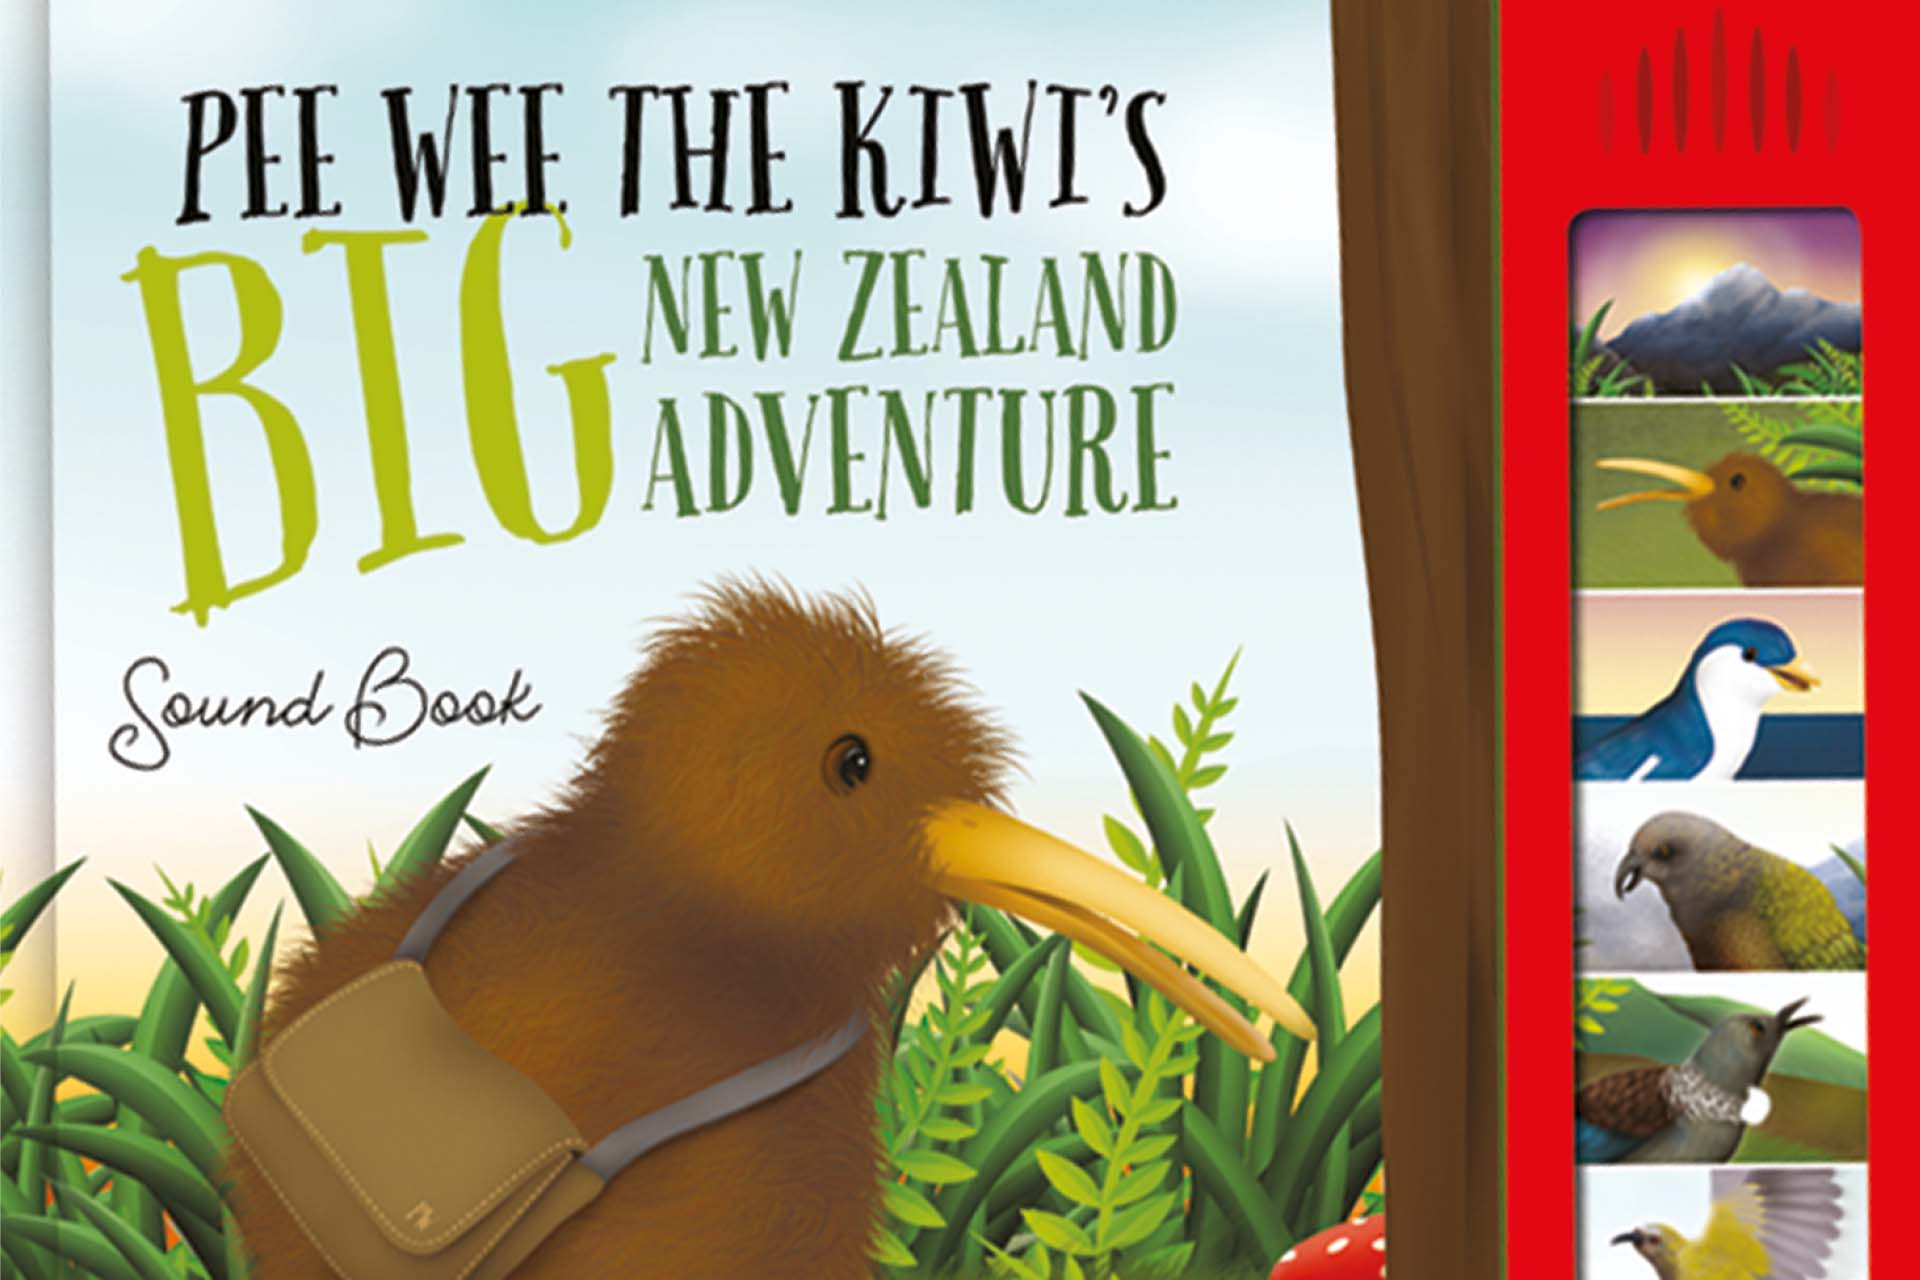 Pee Wee the Kiwi's Big New Zealand Adventure – Sound Book